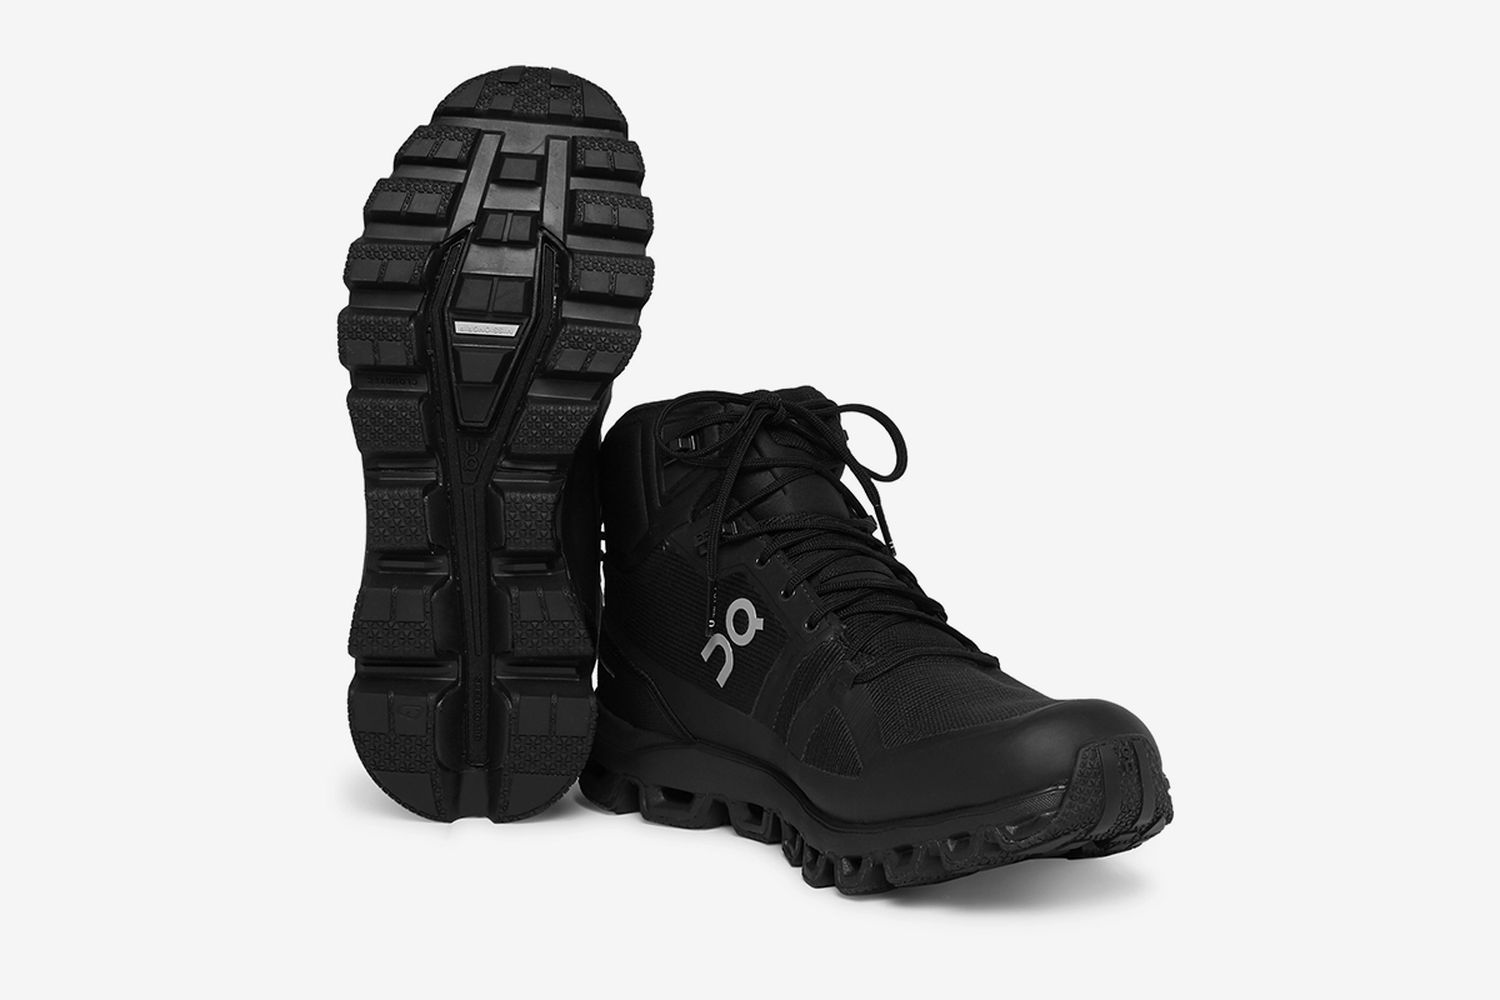 Cloudrock Waterproof Rubber-Trimmed Mesh Boots